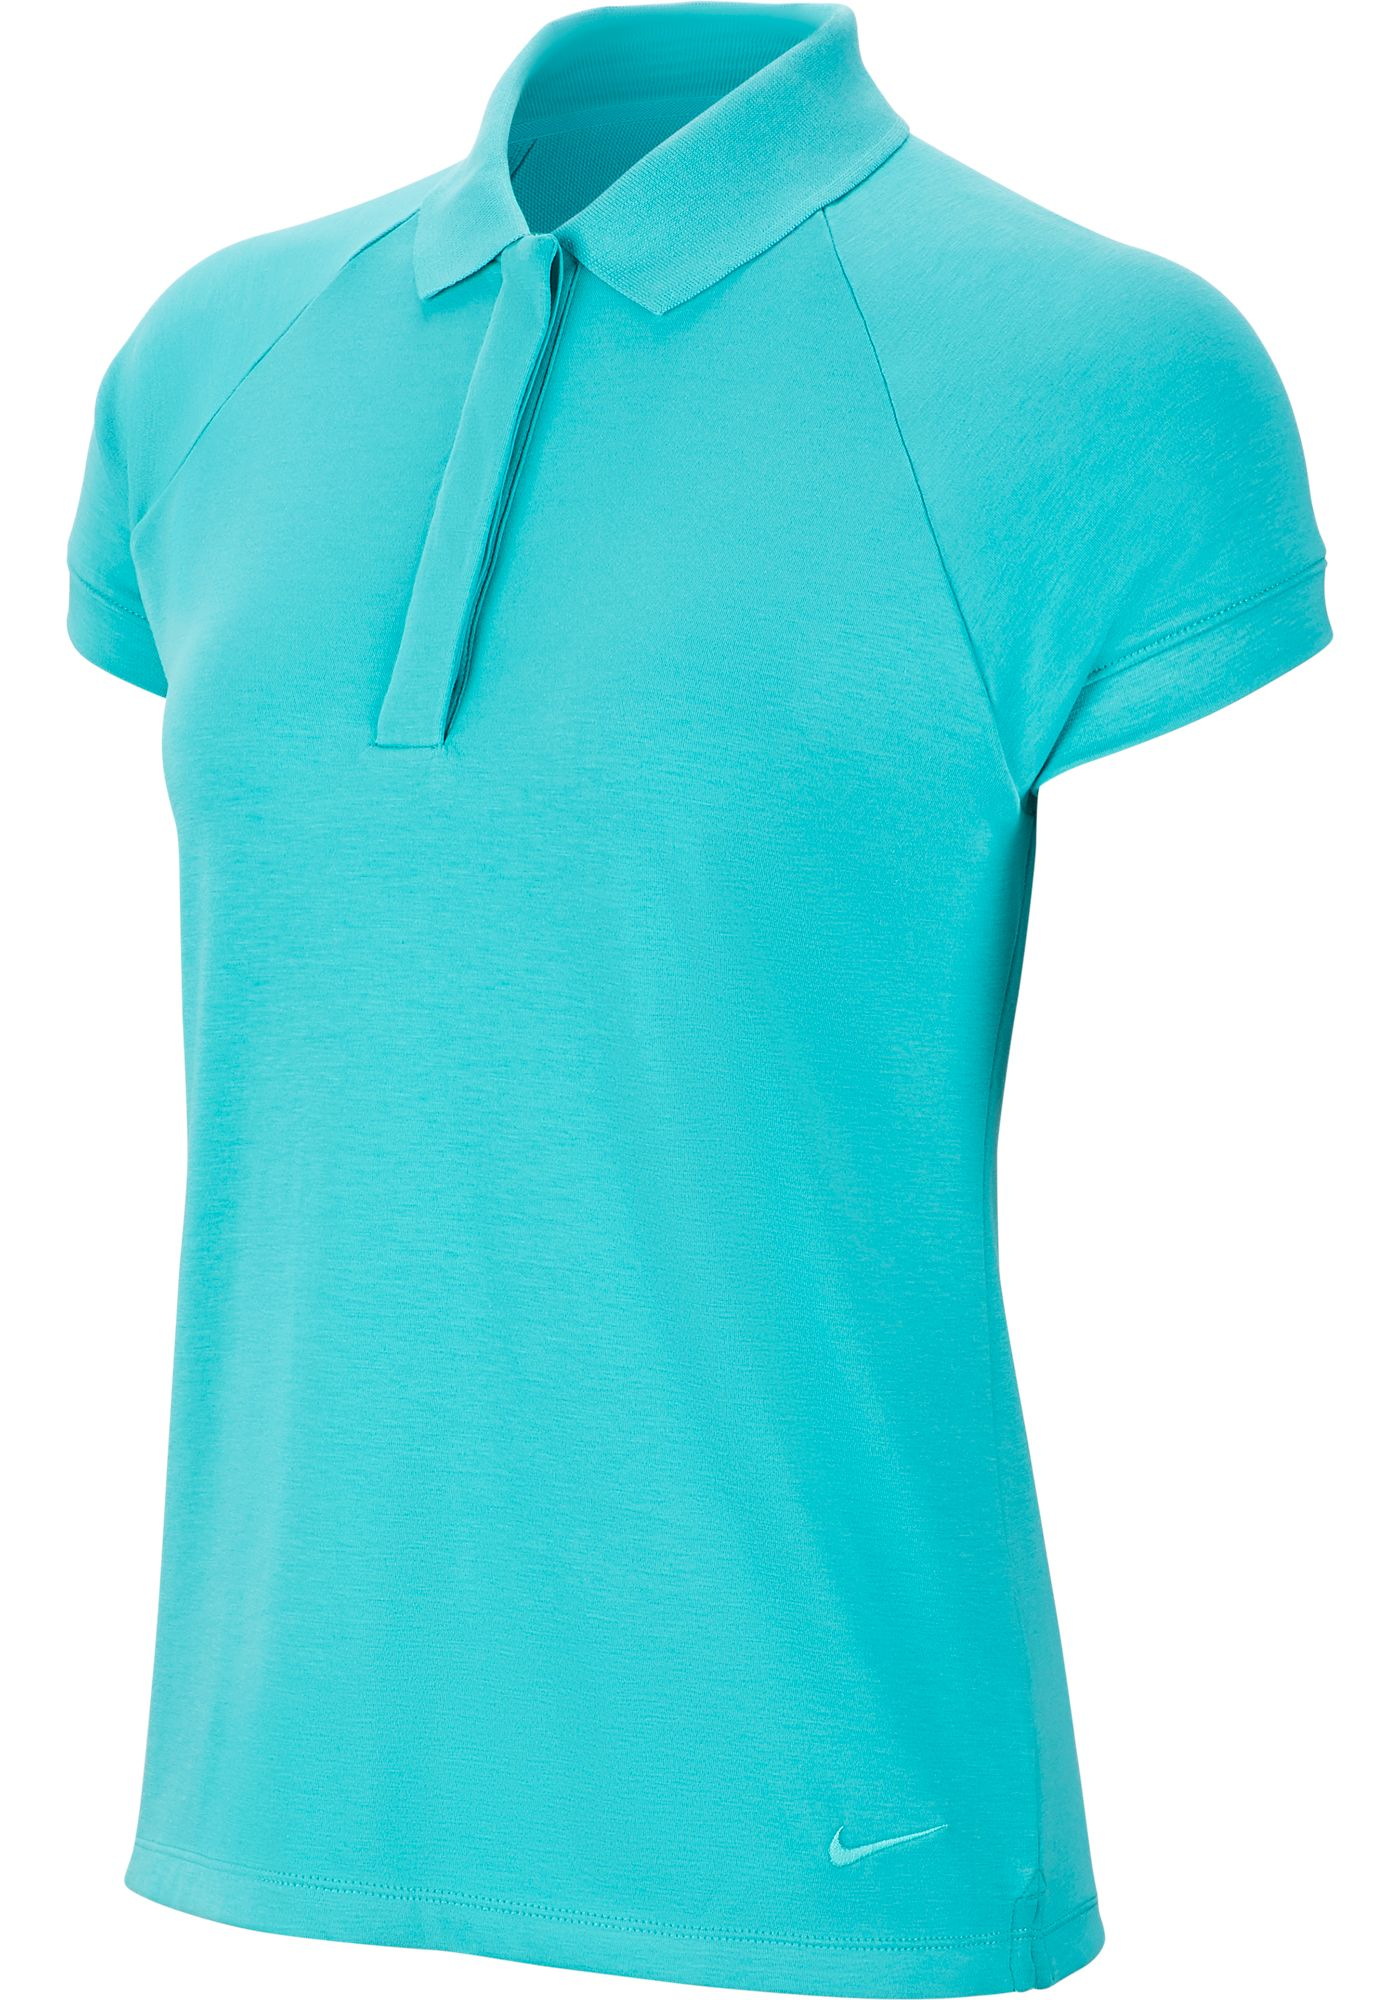 Nike Women's Dri-FIT Short Sleeve Golf Polo